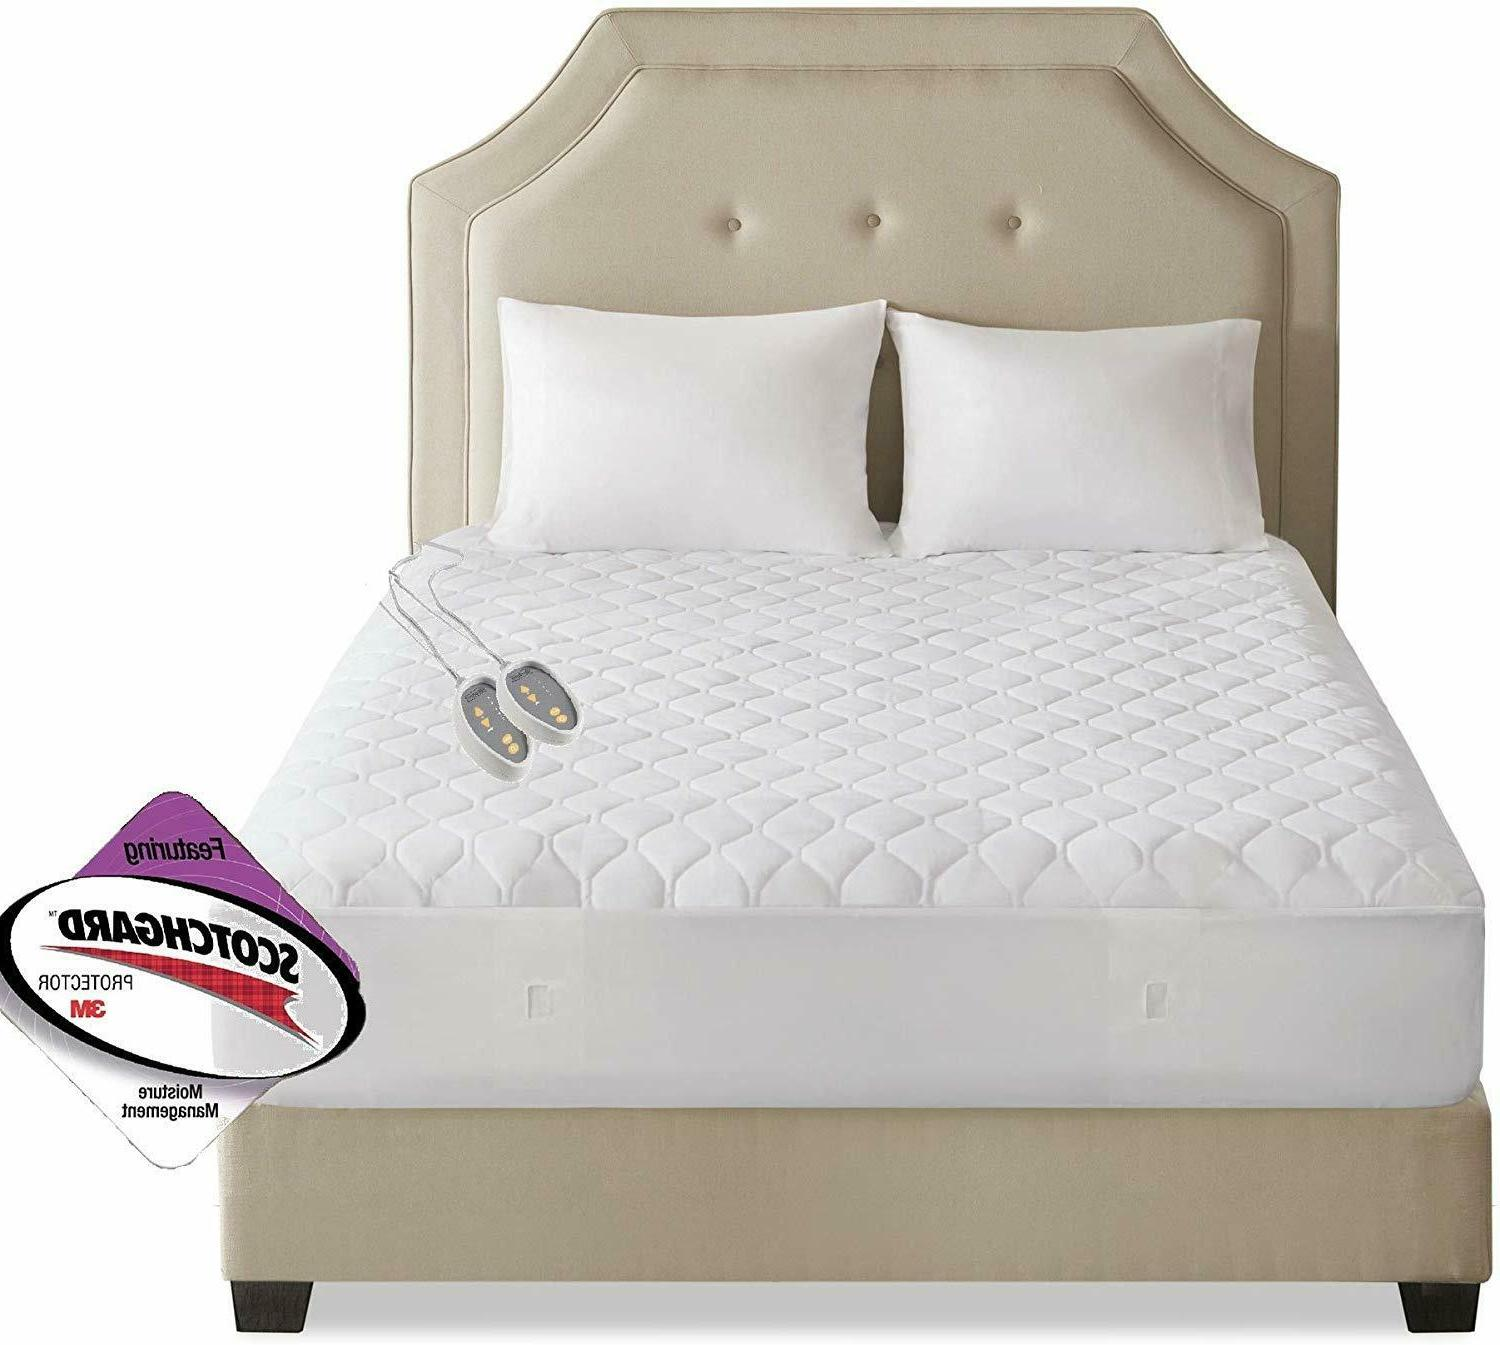 Luxury Heated Mattress Bed Warmer 3M Quilted Bed Mattress